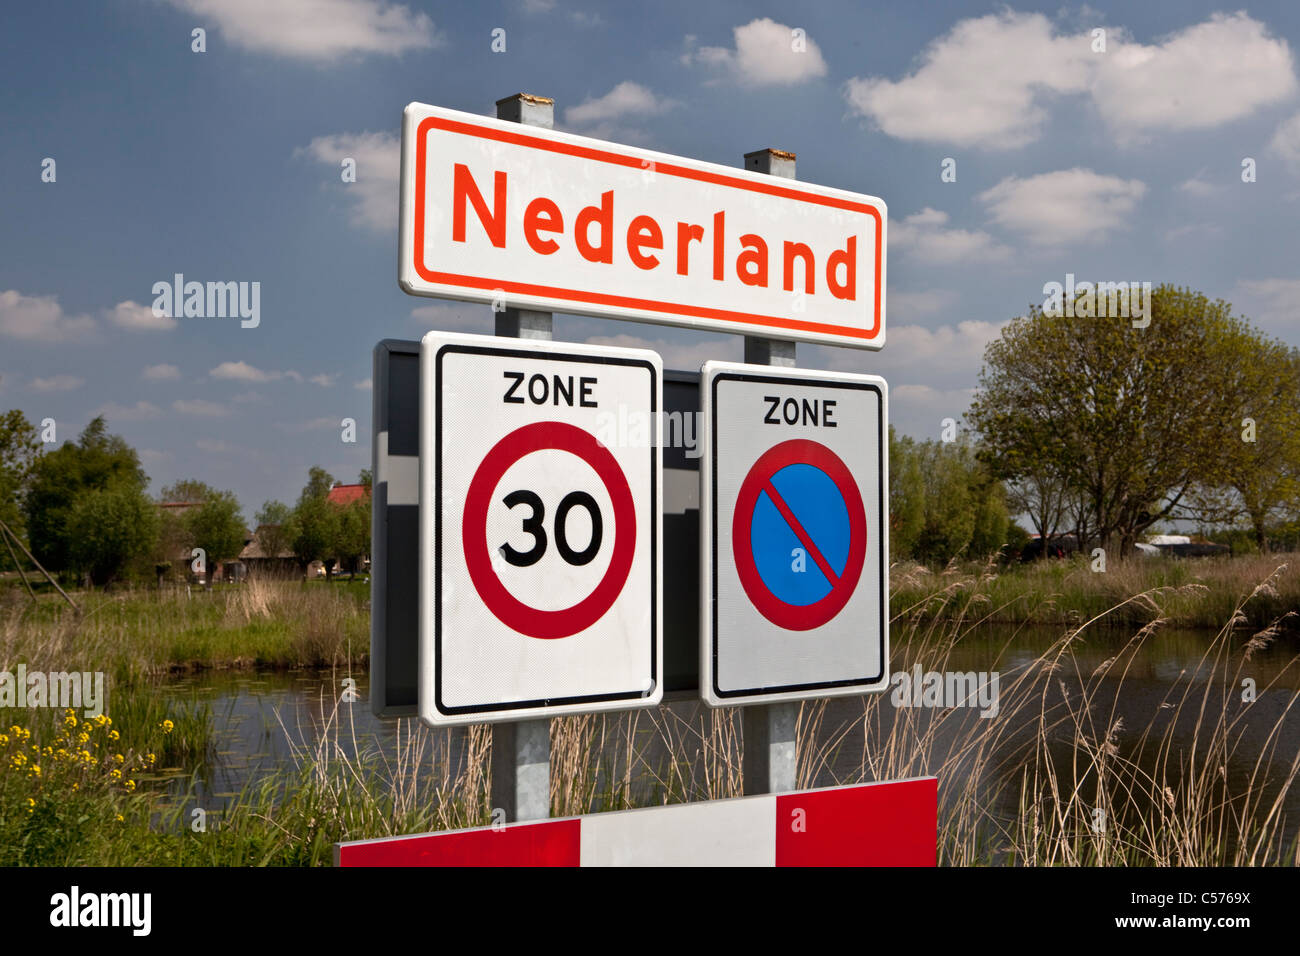 The Netherlands, Nederland, Village called Nederland, which means Netherlands in Dutch. - Stock Image